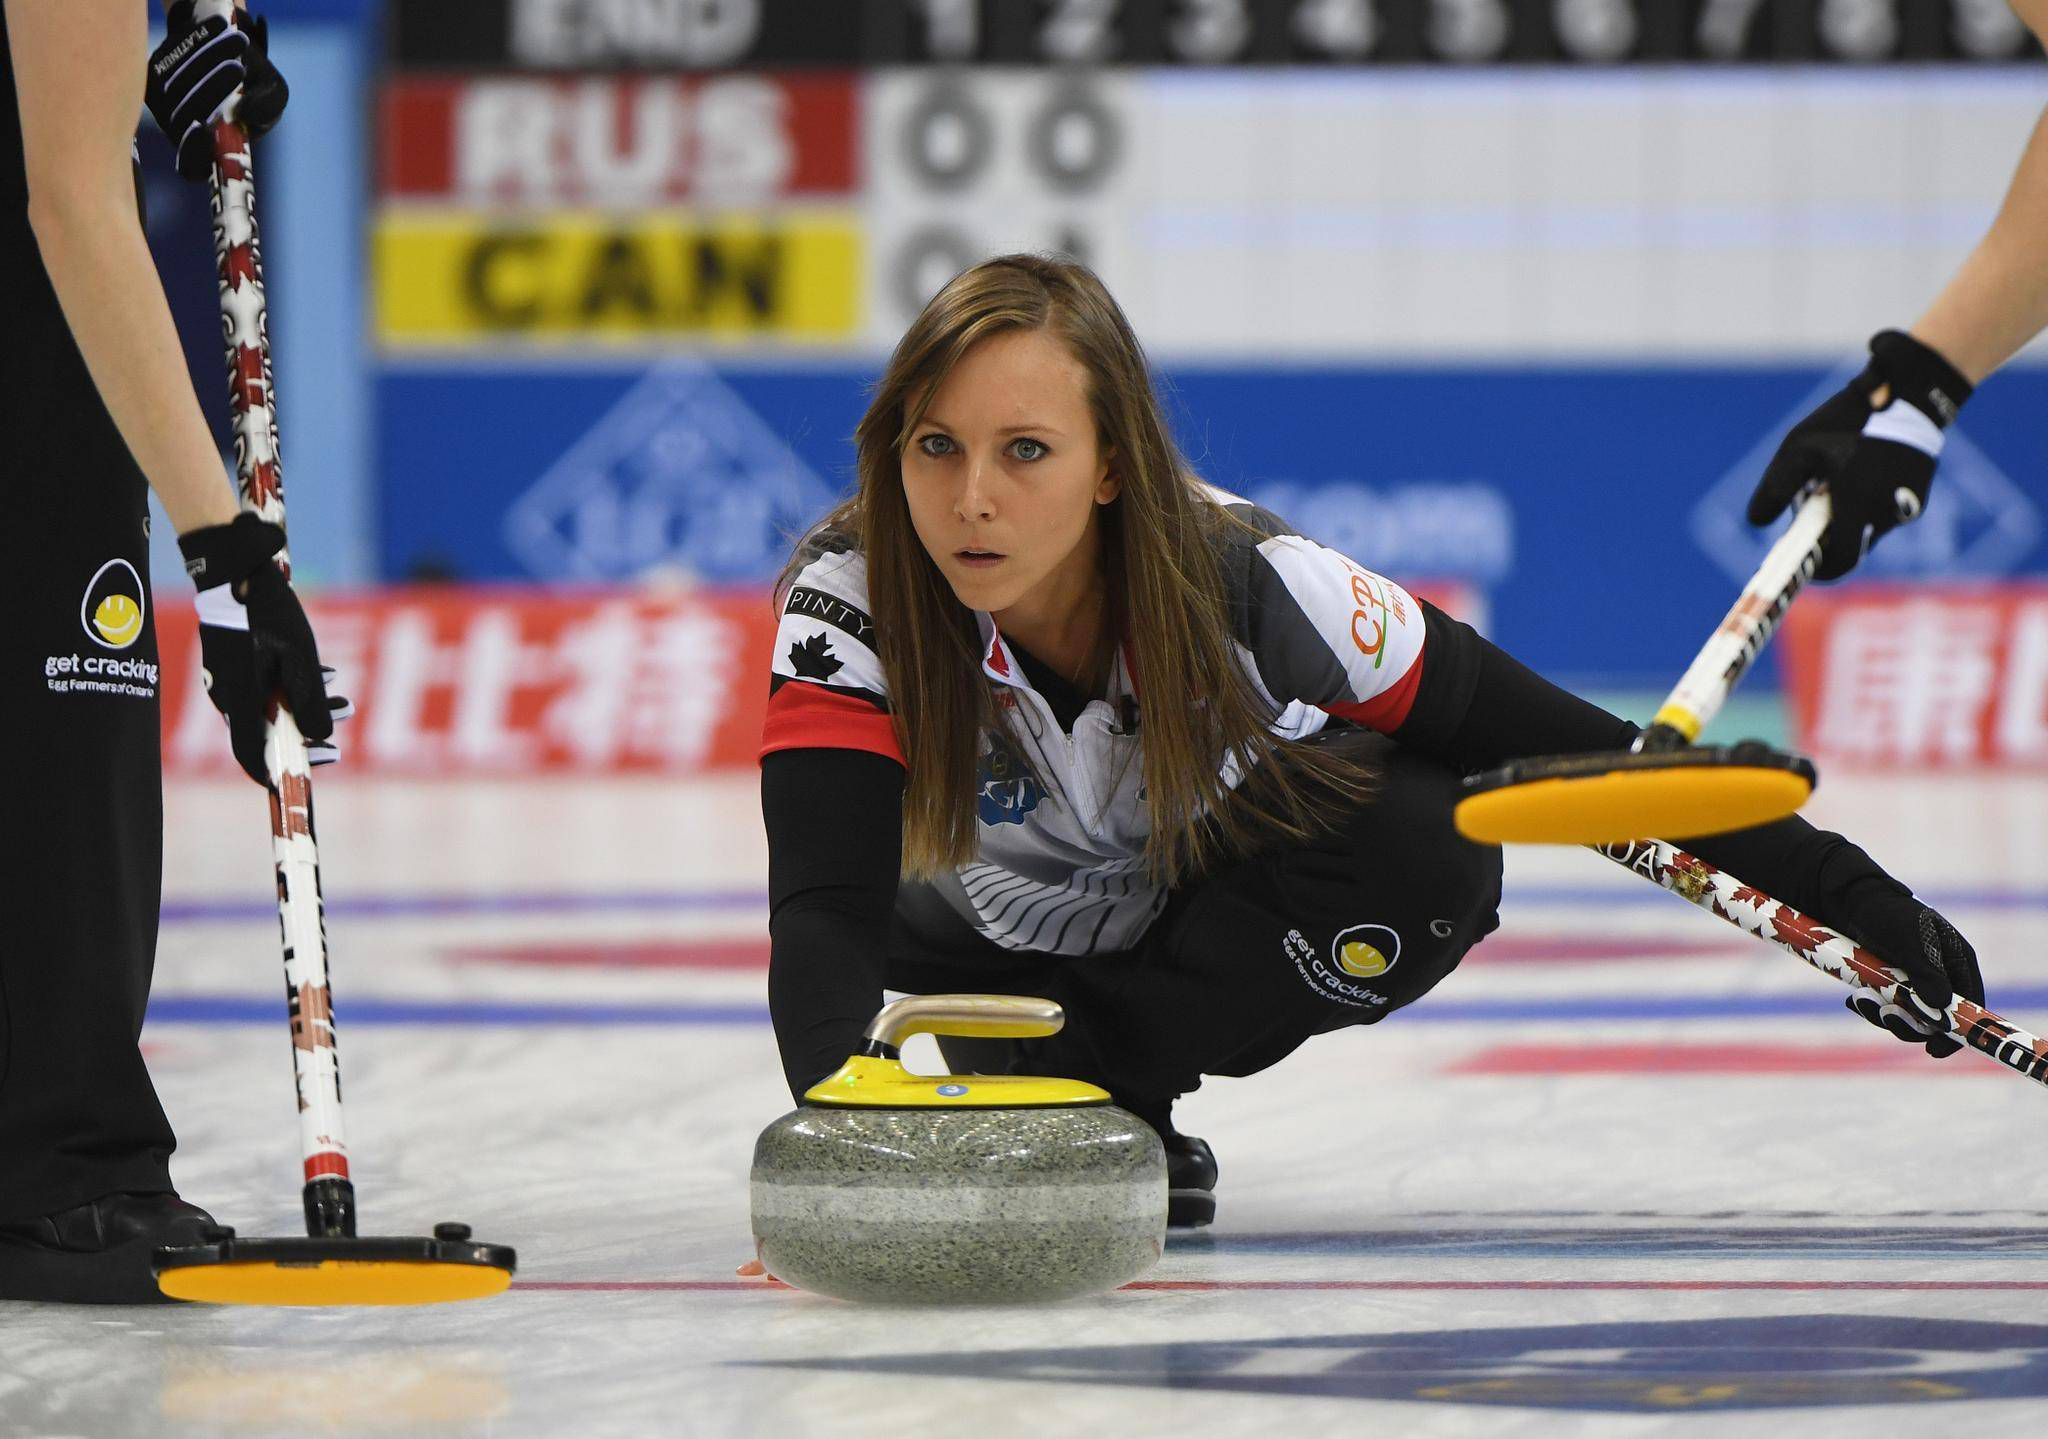 Anette Norberg canada stays perfect to advance to world women's curling